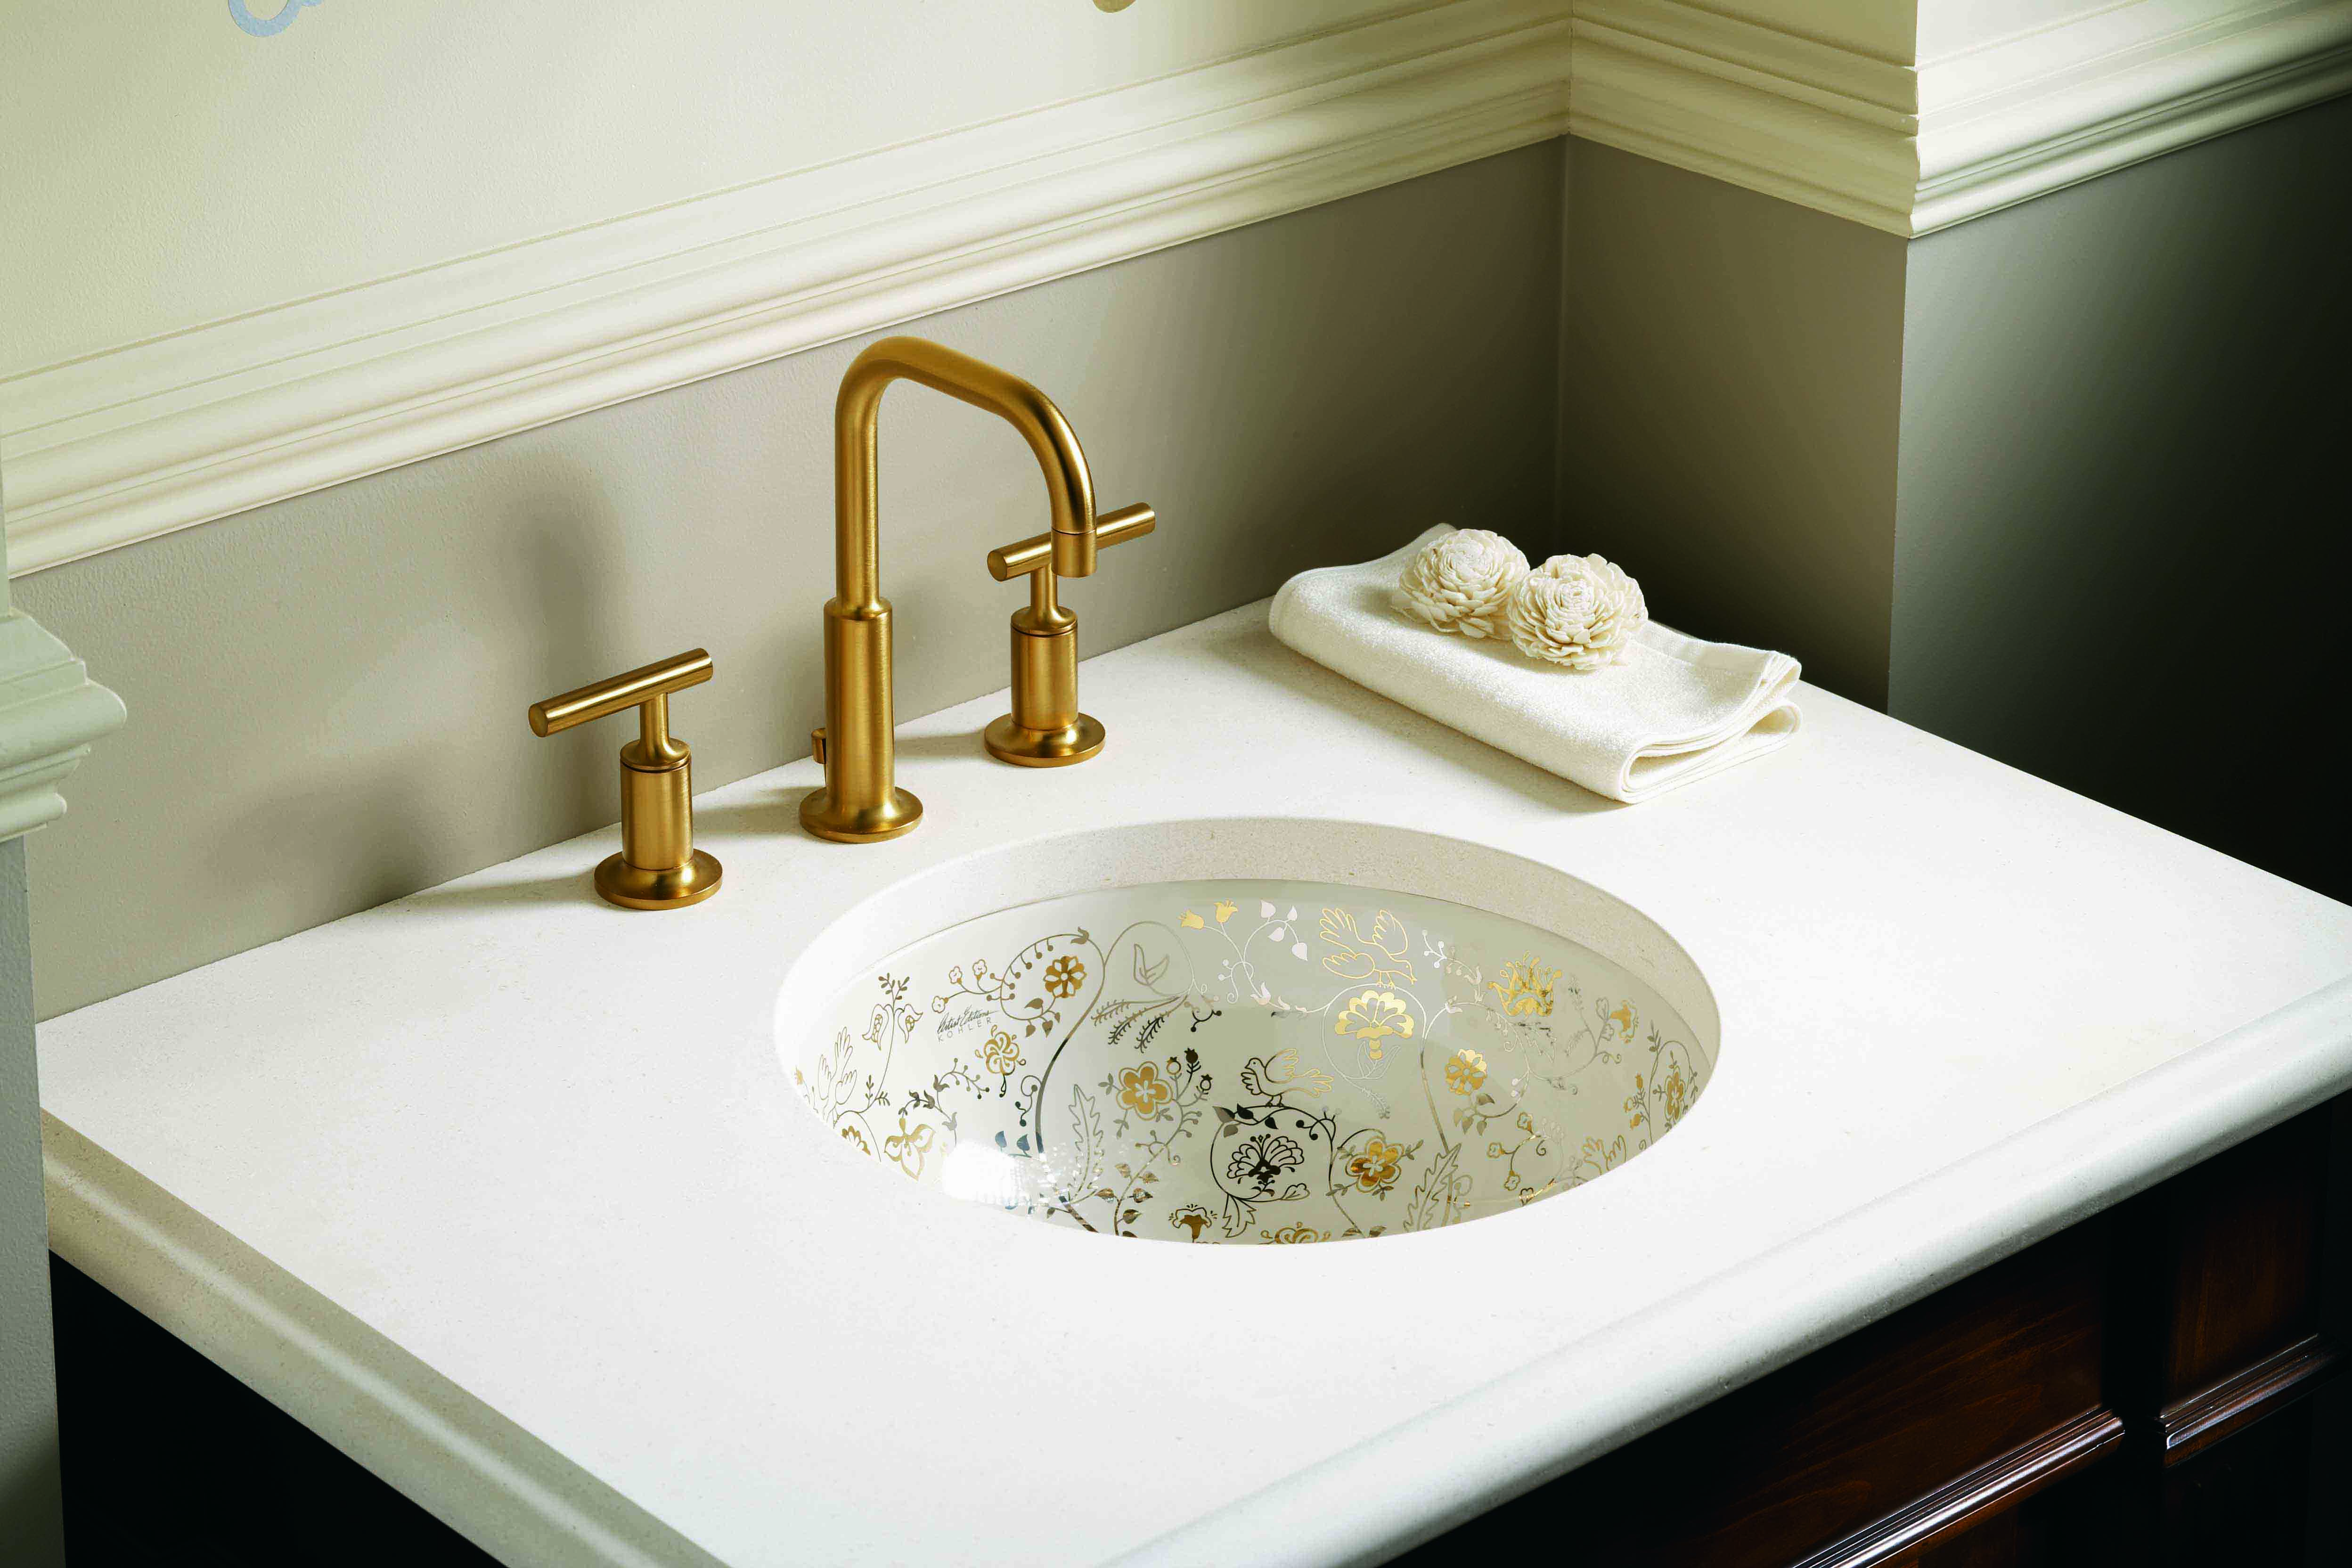 Purist Faucet     Mille Fleurs Sink     Juxtaposing an ornate sink with a simple Vibrant® Brushed Moderne Gold faucet makes a unique style statement.